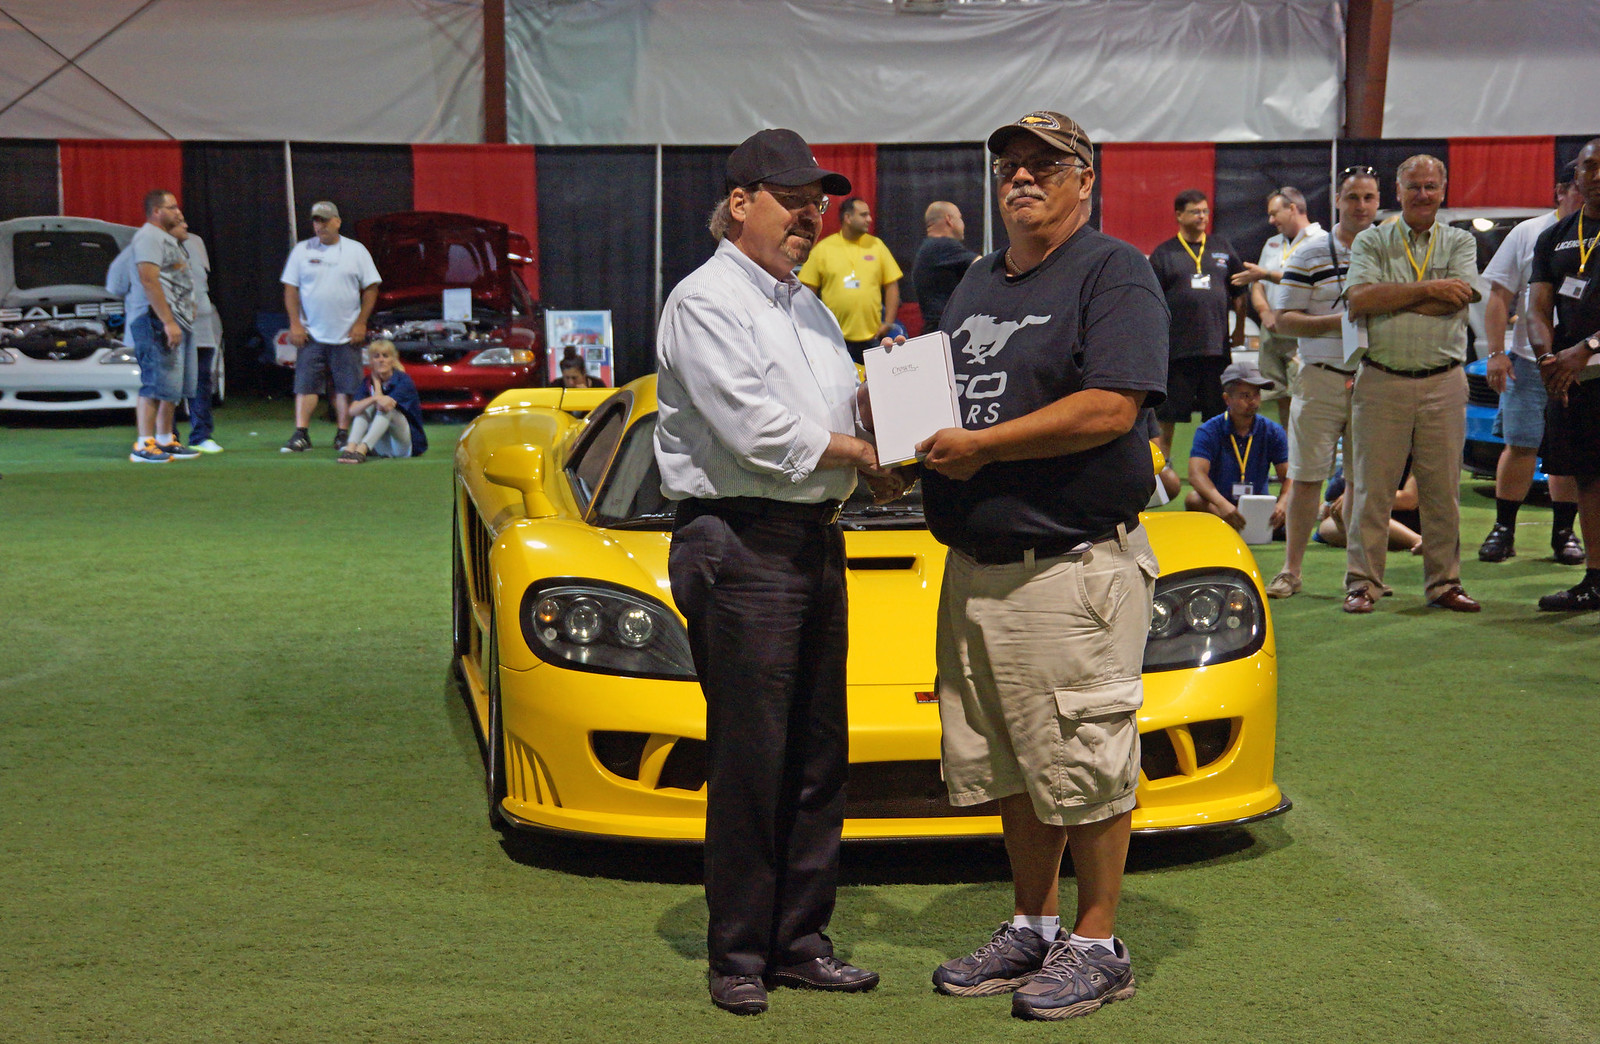 Saleen Nationals 2014 pictures 14789942666_762e53ac2e_h